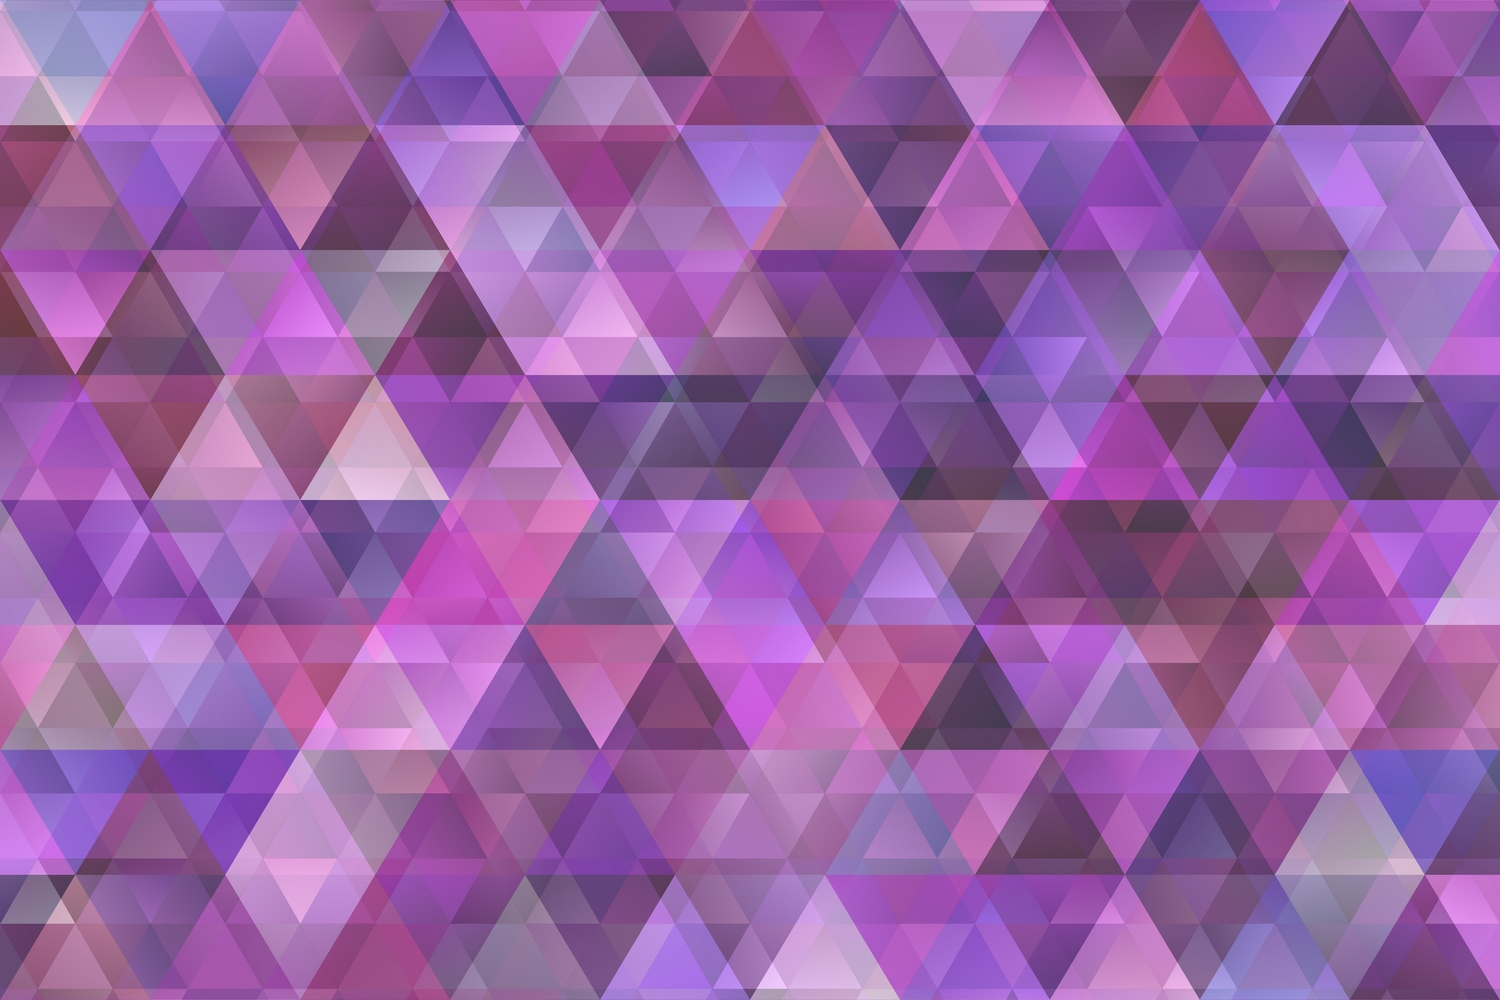 24 Gradient Polygon Backgrounds AI, EPS, JPG 5000x5000 example image 20